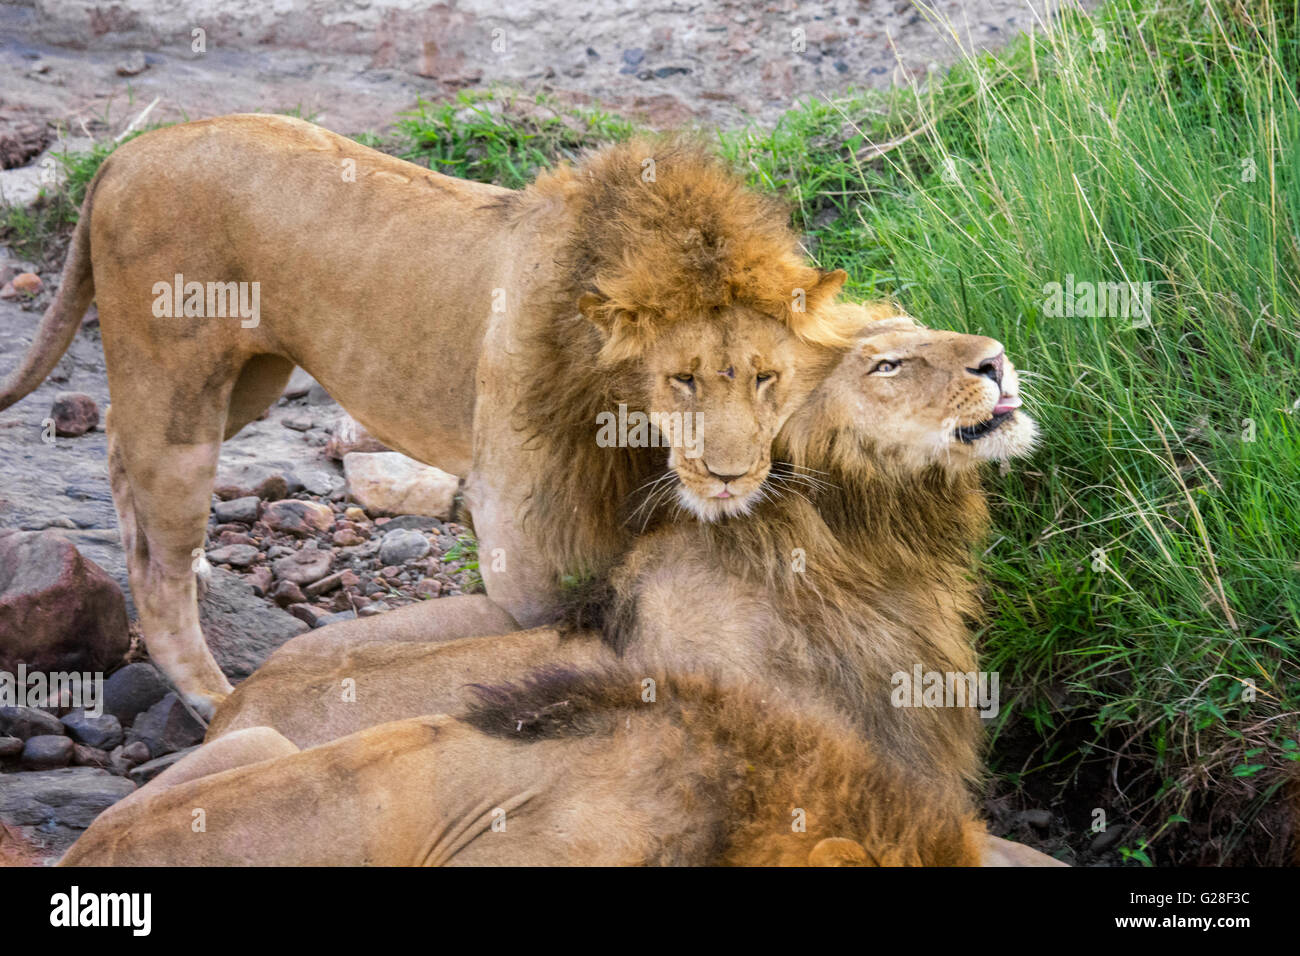 Les Lions de l'Afrique de l'homme, Panthera leo, montrer de l'affection, Masai Mara National Reserve, Photo Stock